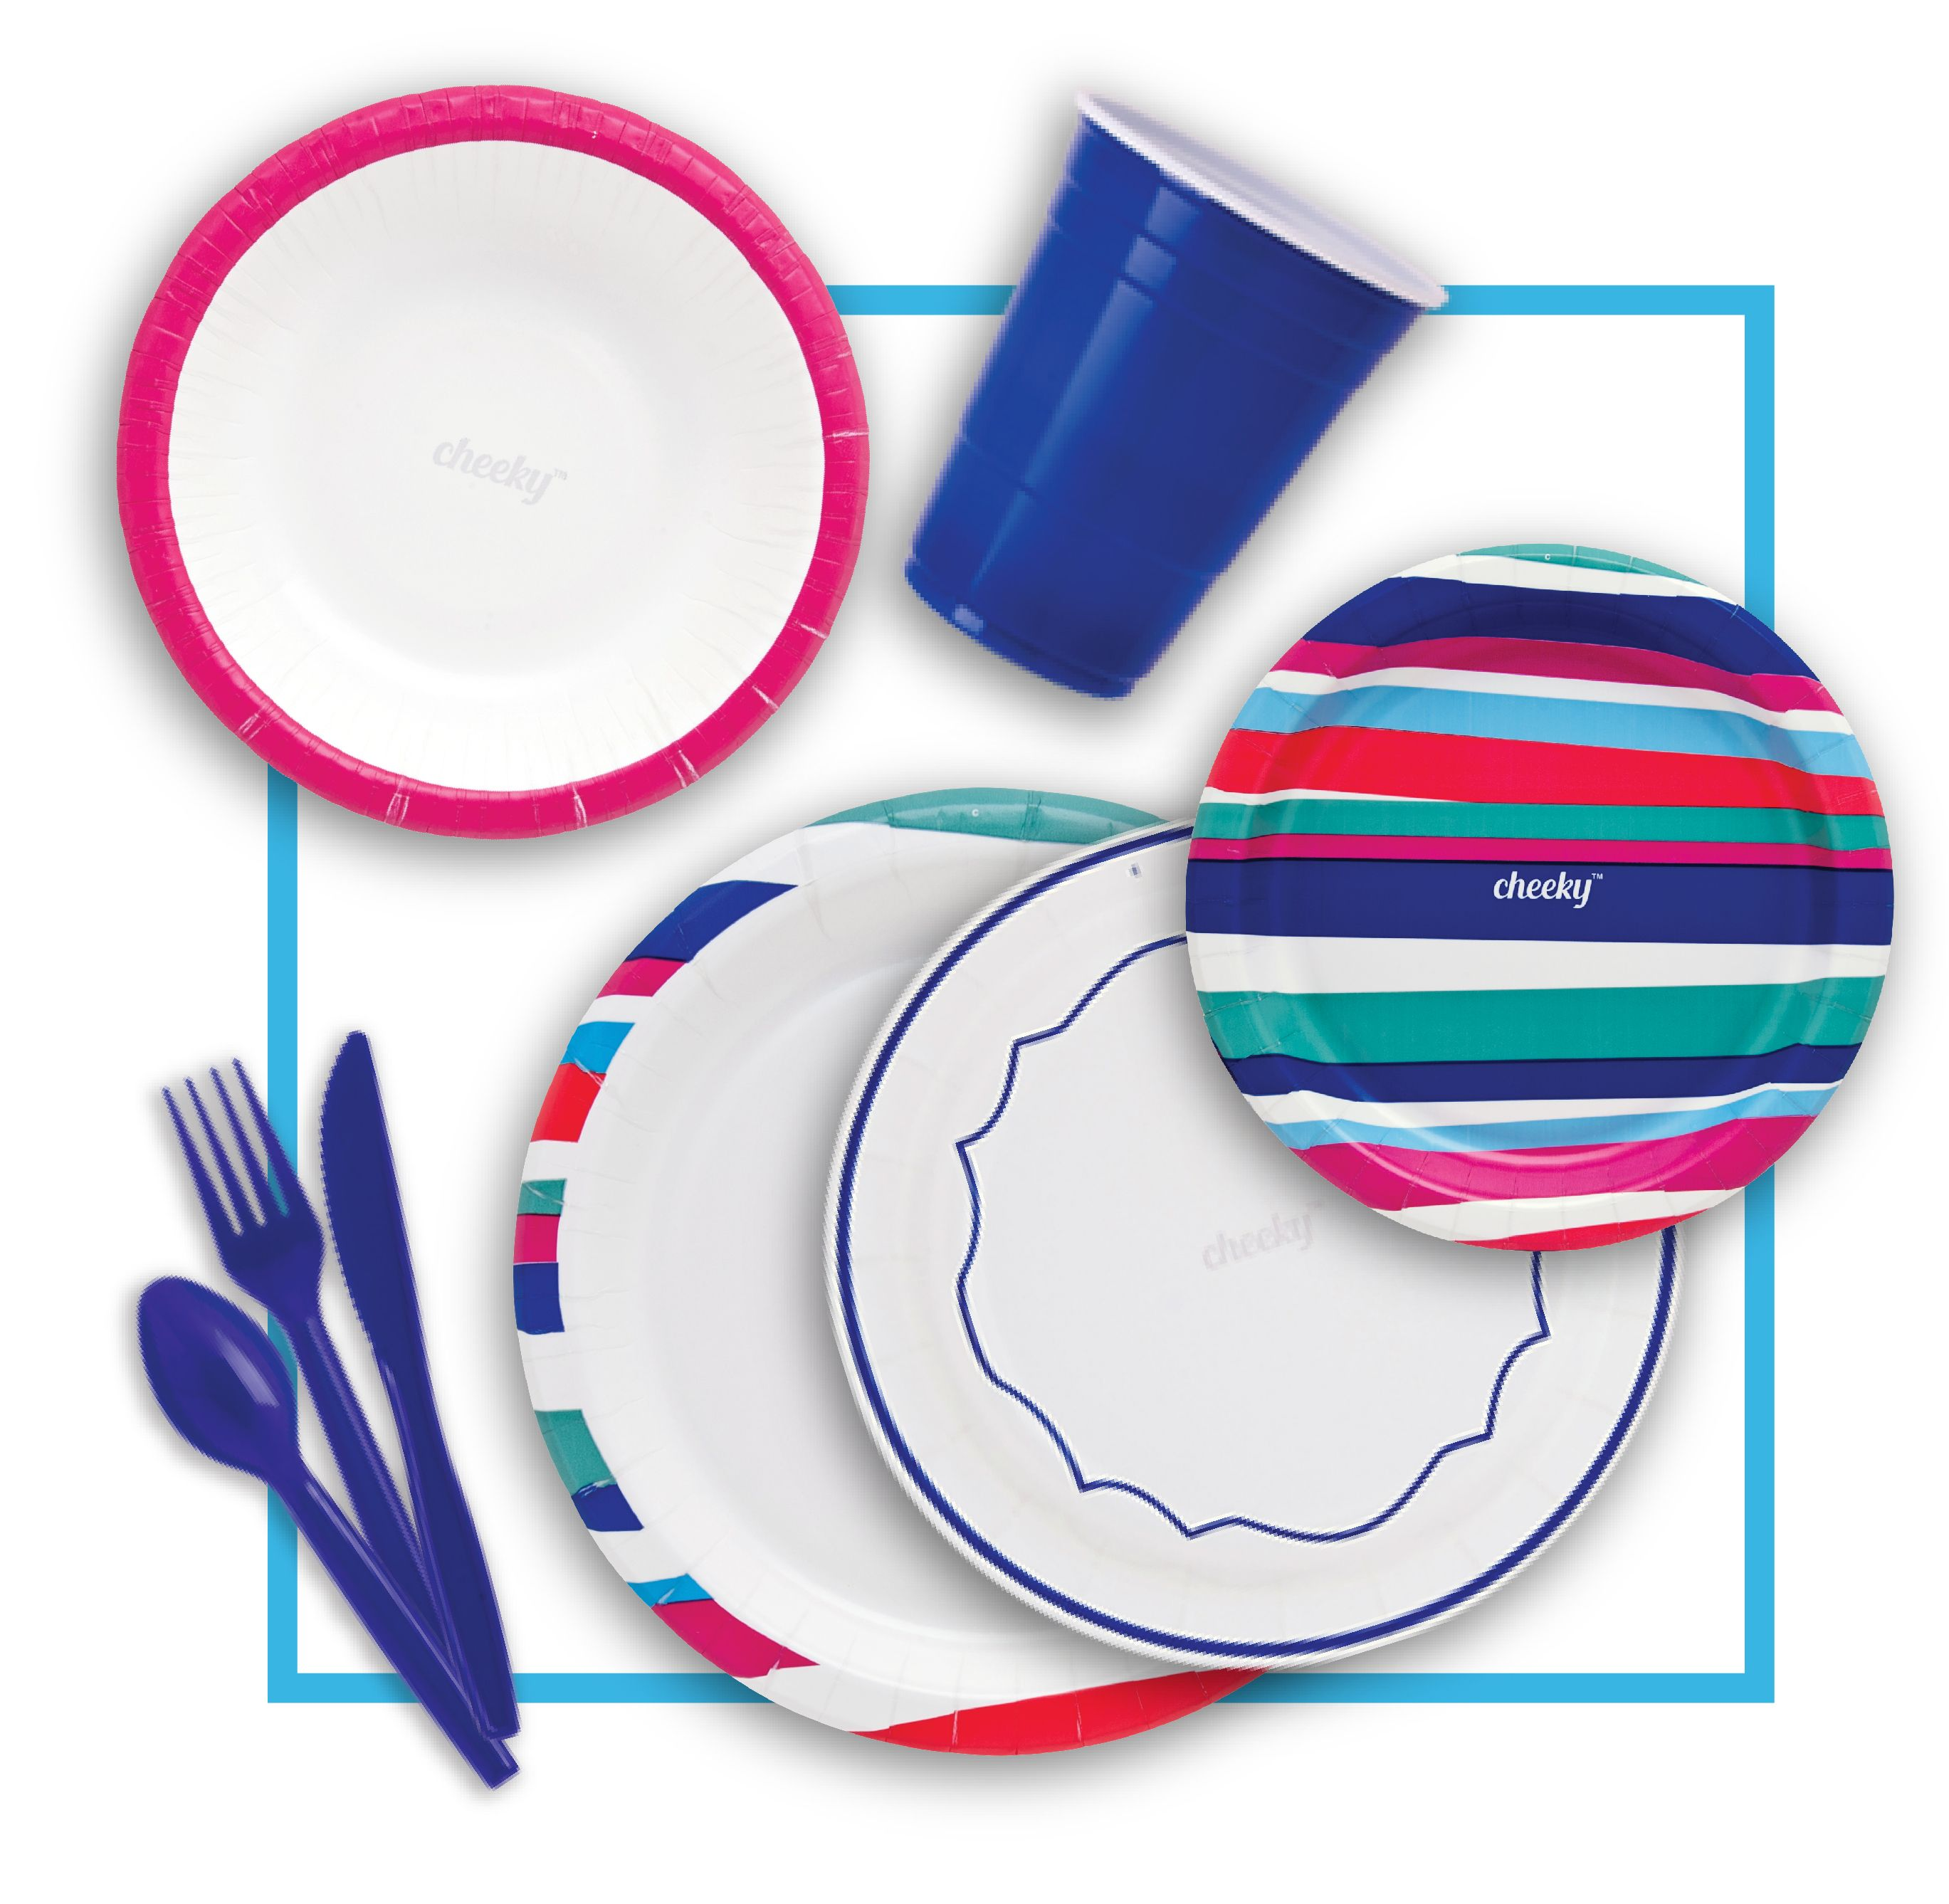 Down with the boring paper plate! Get Cheeky at Target.  sc 1 st  Pinterest & Down with the boring paper plate! Get Cheeky at Target. | preppy fun ...